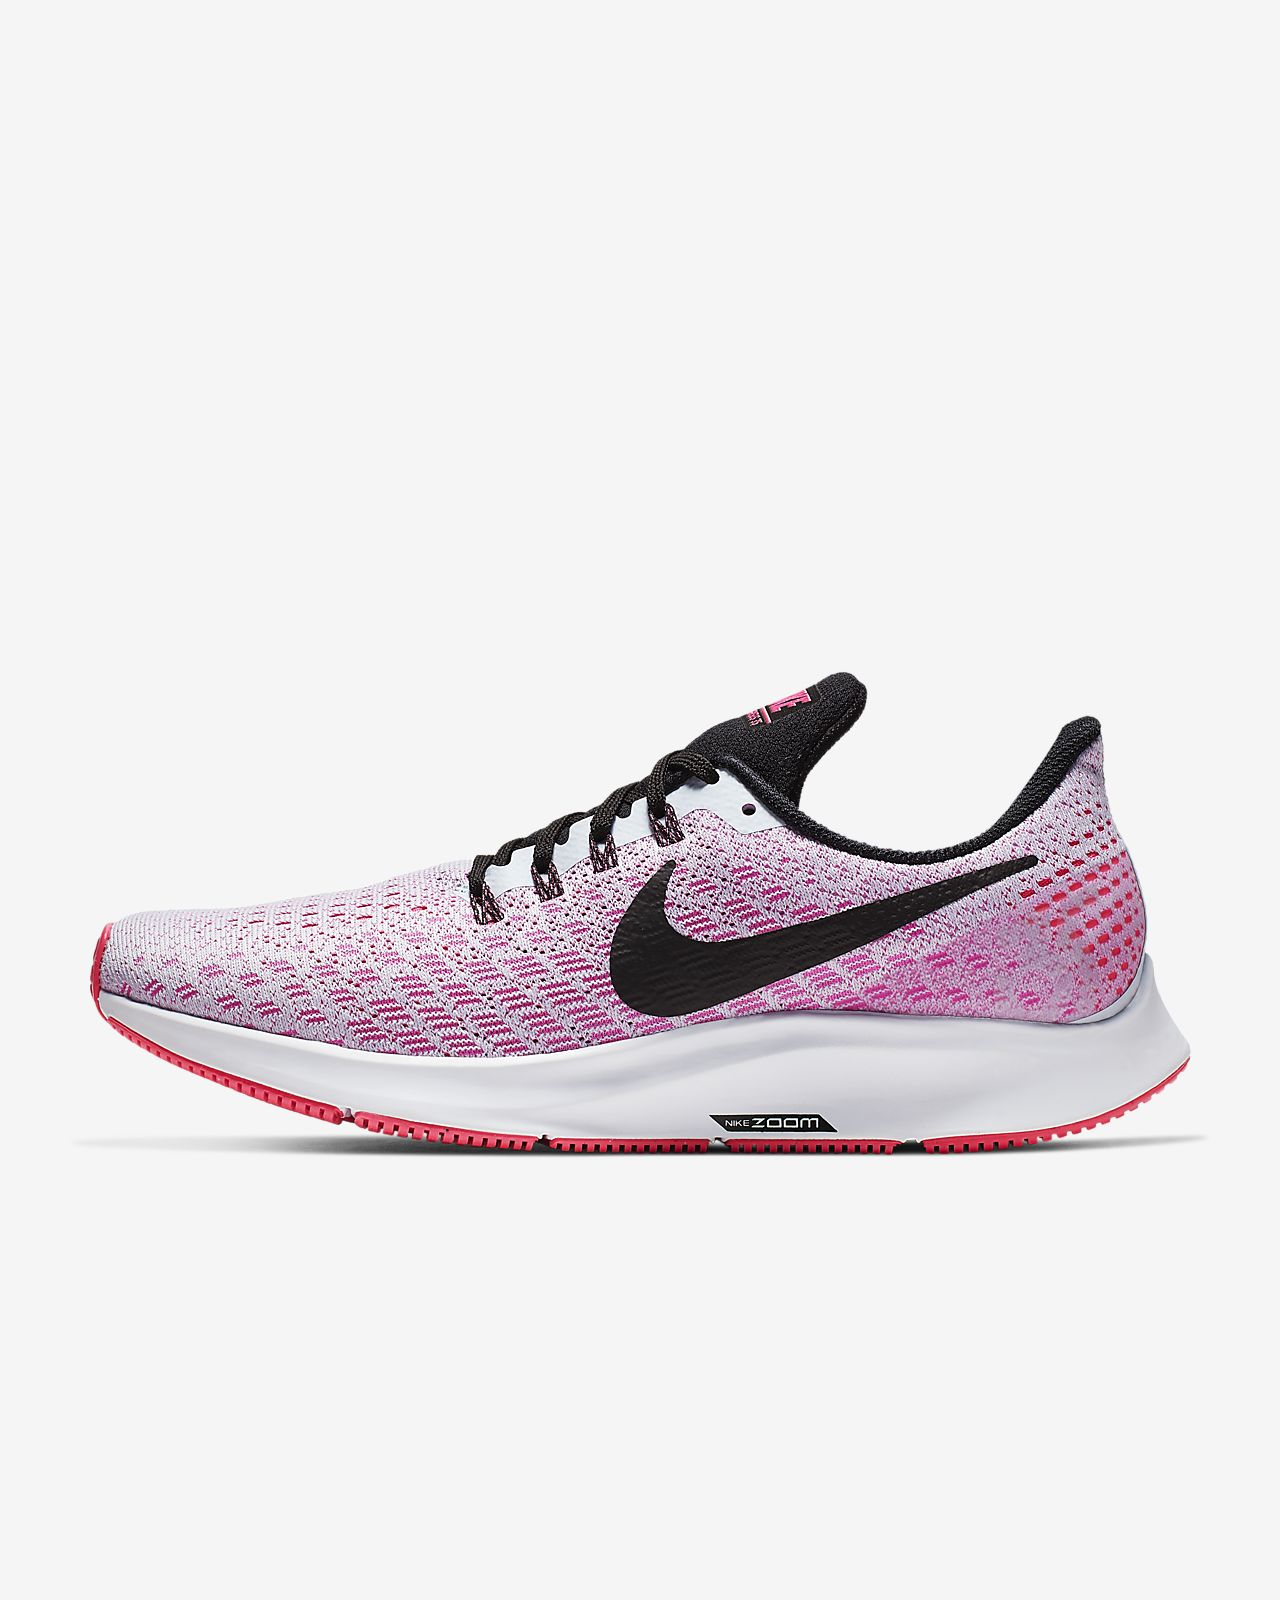 the best attitude d10a0 c1738 ... Nike Air Zoom Pegasus 35 Women s Running Shoe